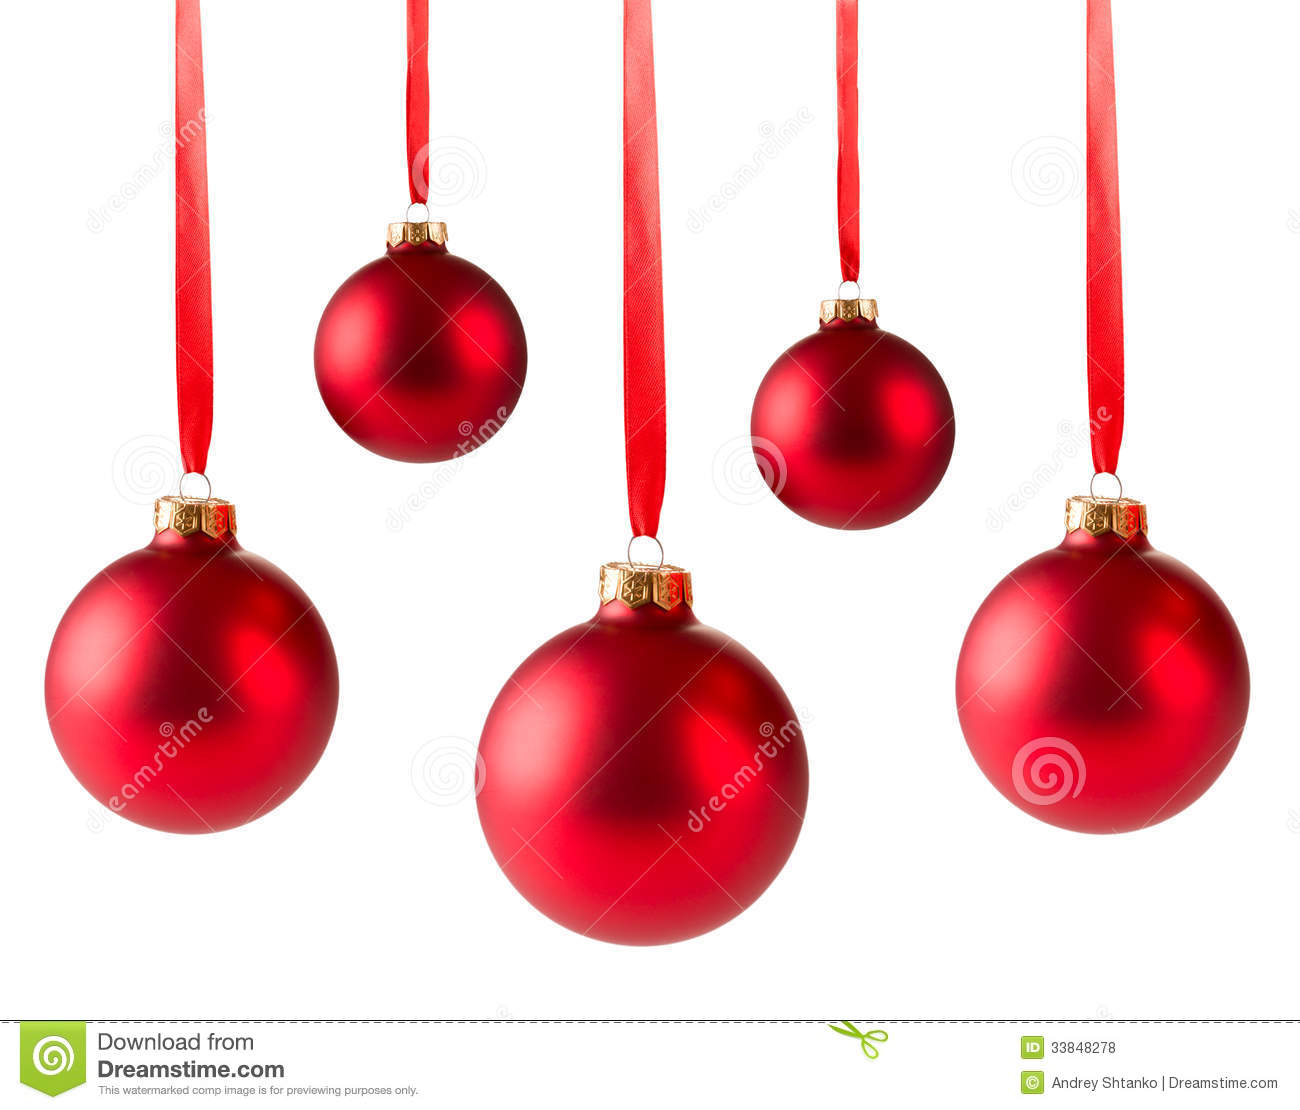 Five Red Christmas Balls Hanging